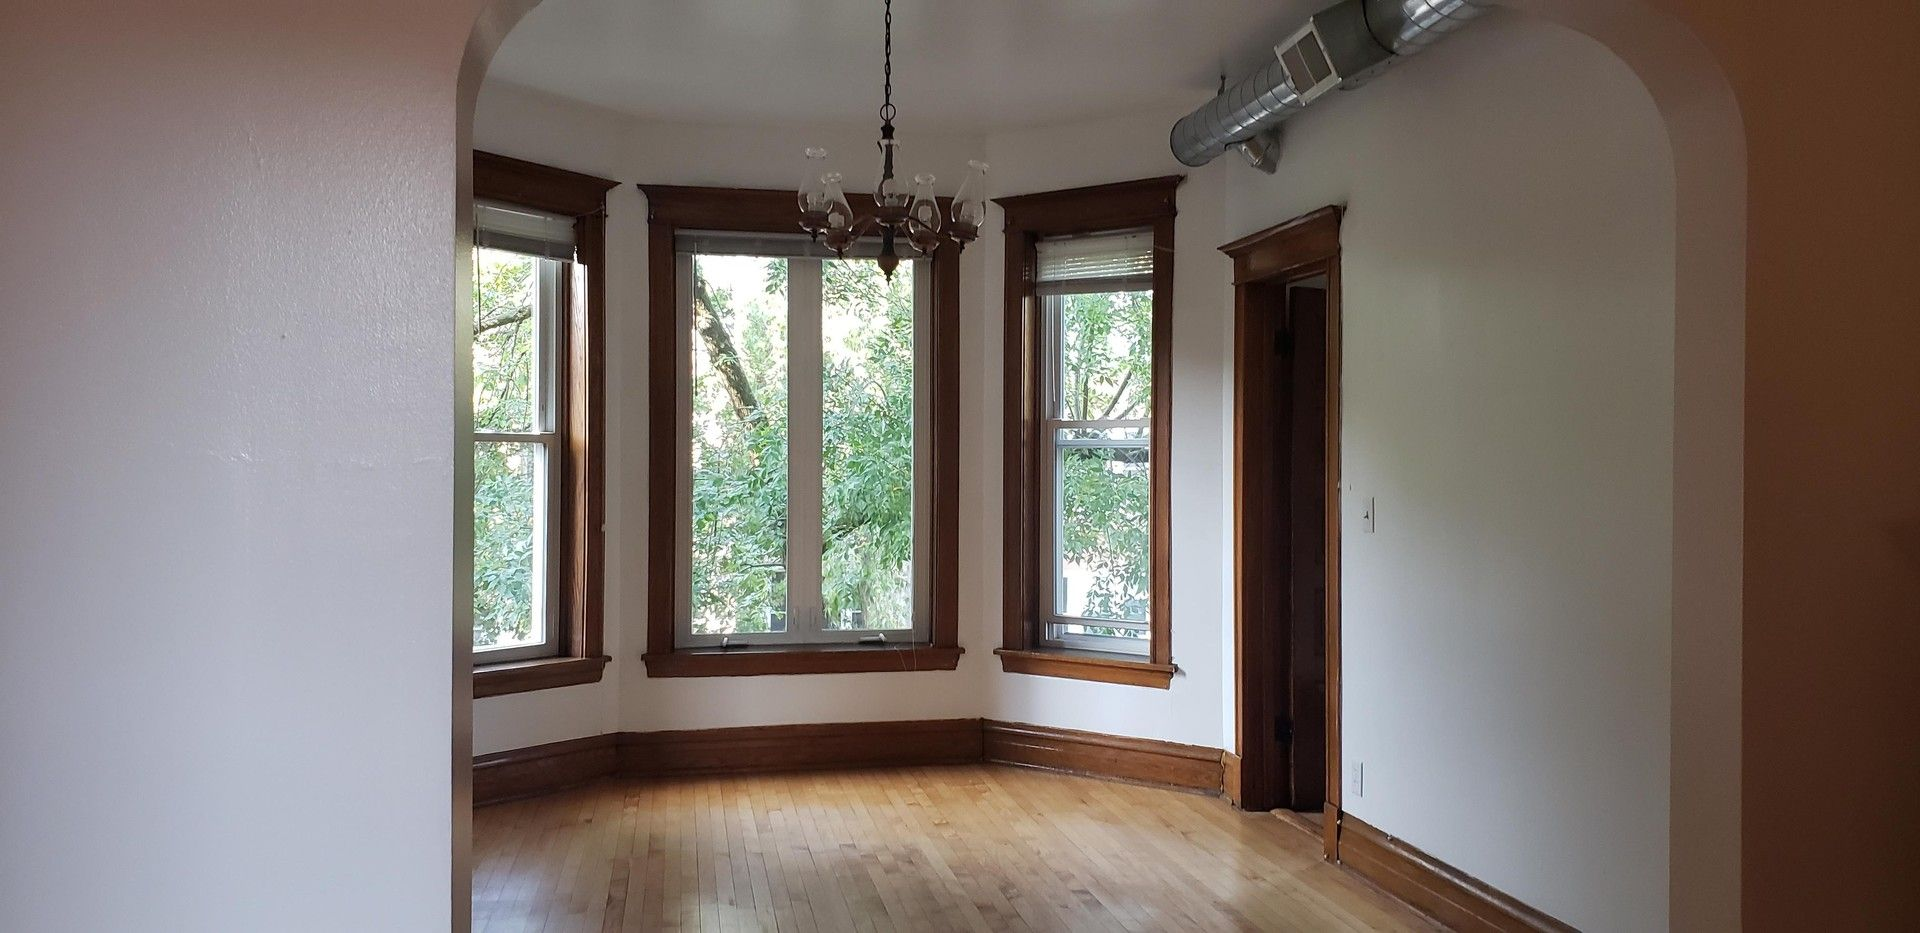 Photo 3: Photos: 2715 Evergreen Avenue Unit 2 in Chicago: CHI - West Town Residential Lease for lease ()  : MLS®# 10877768